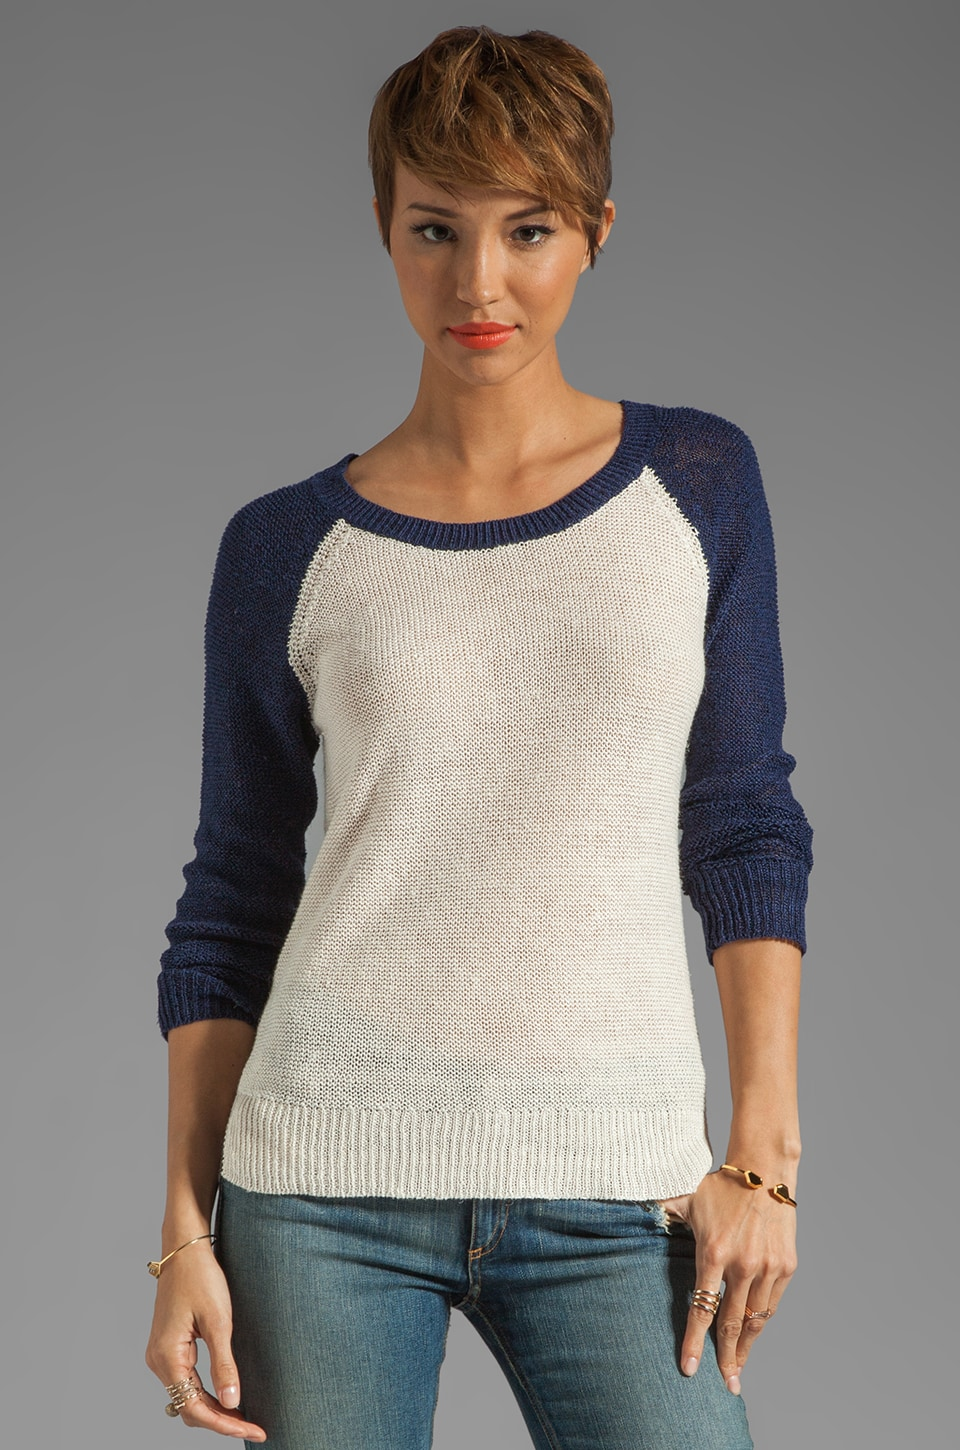 Splendid Coastal Linen Sweater in Navy